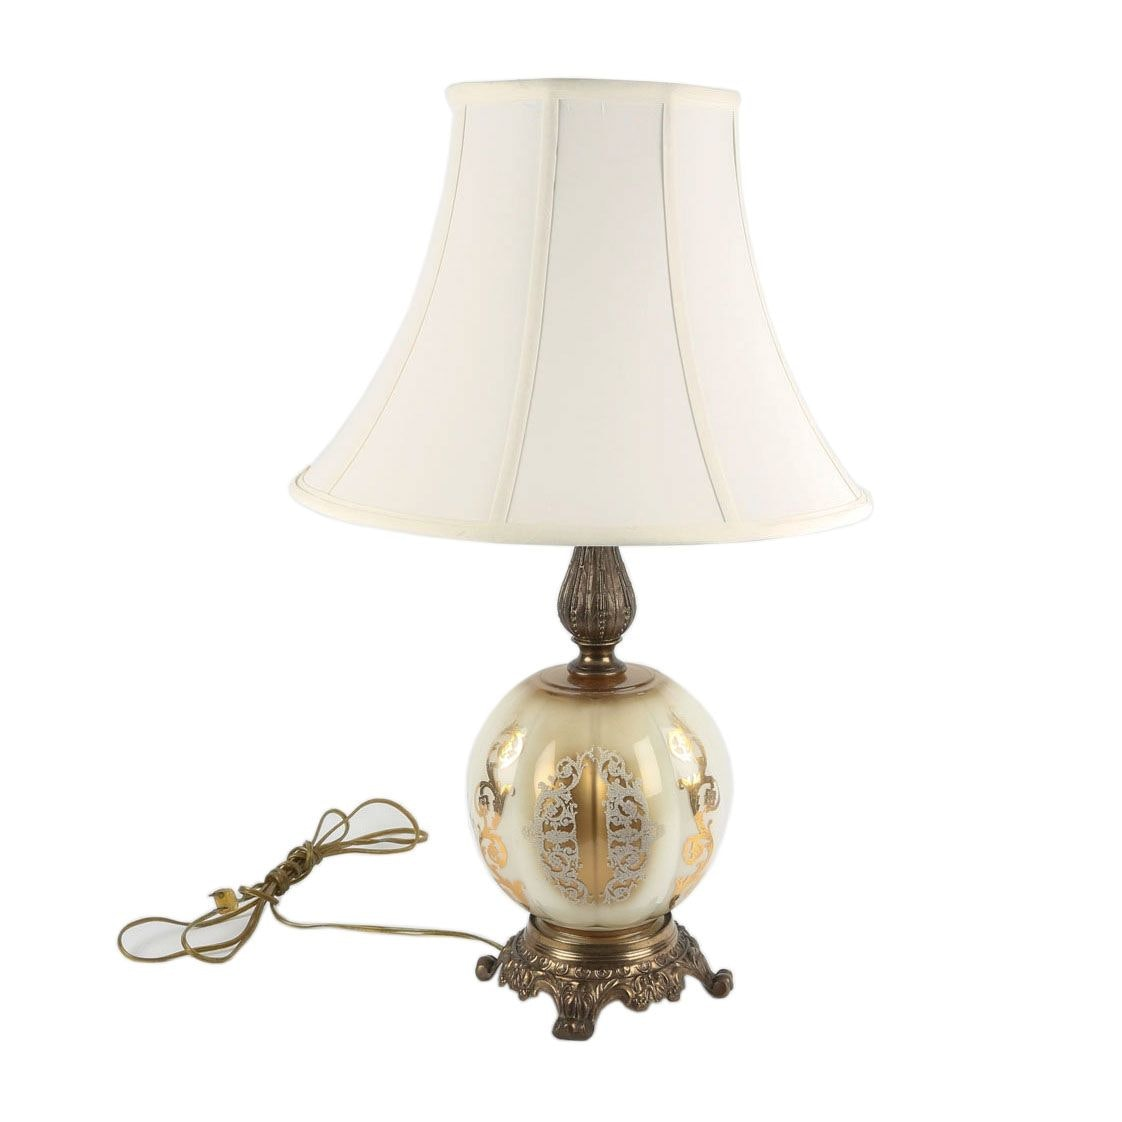 Vintage Gilt Accented Glass Orb Table Lamp with Footed Brass Base and Lampshade